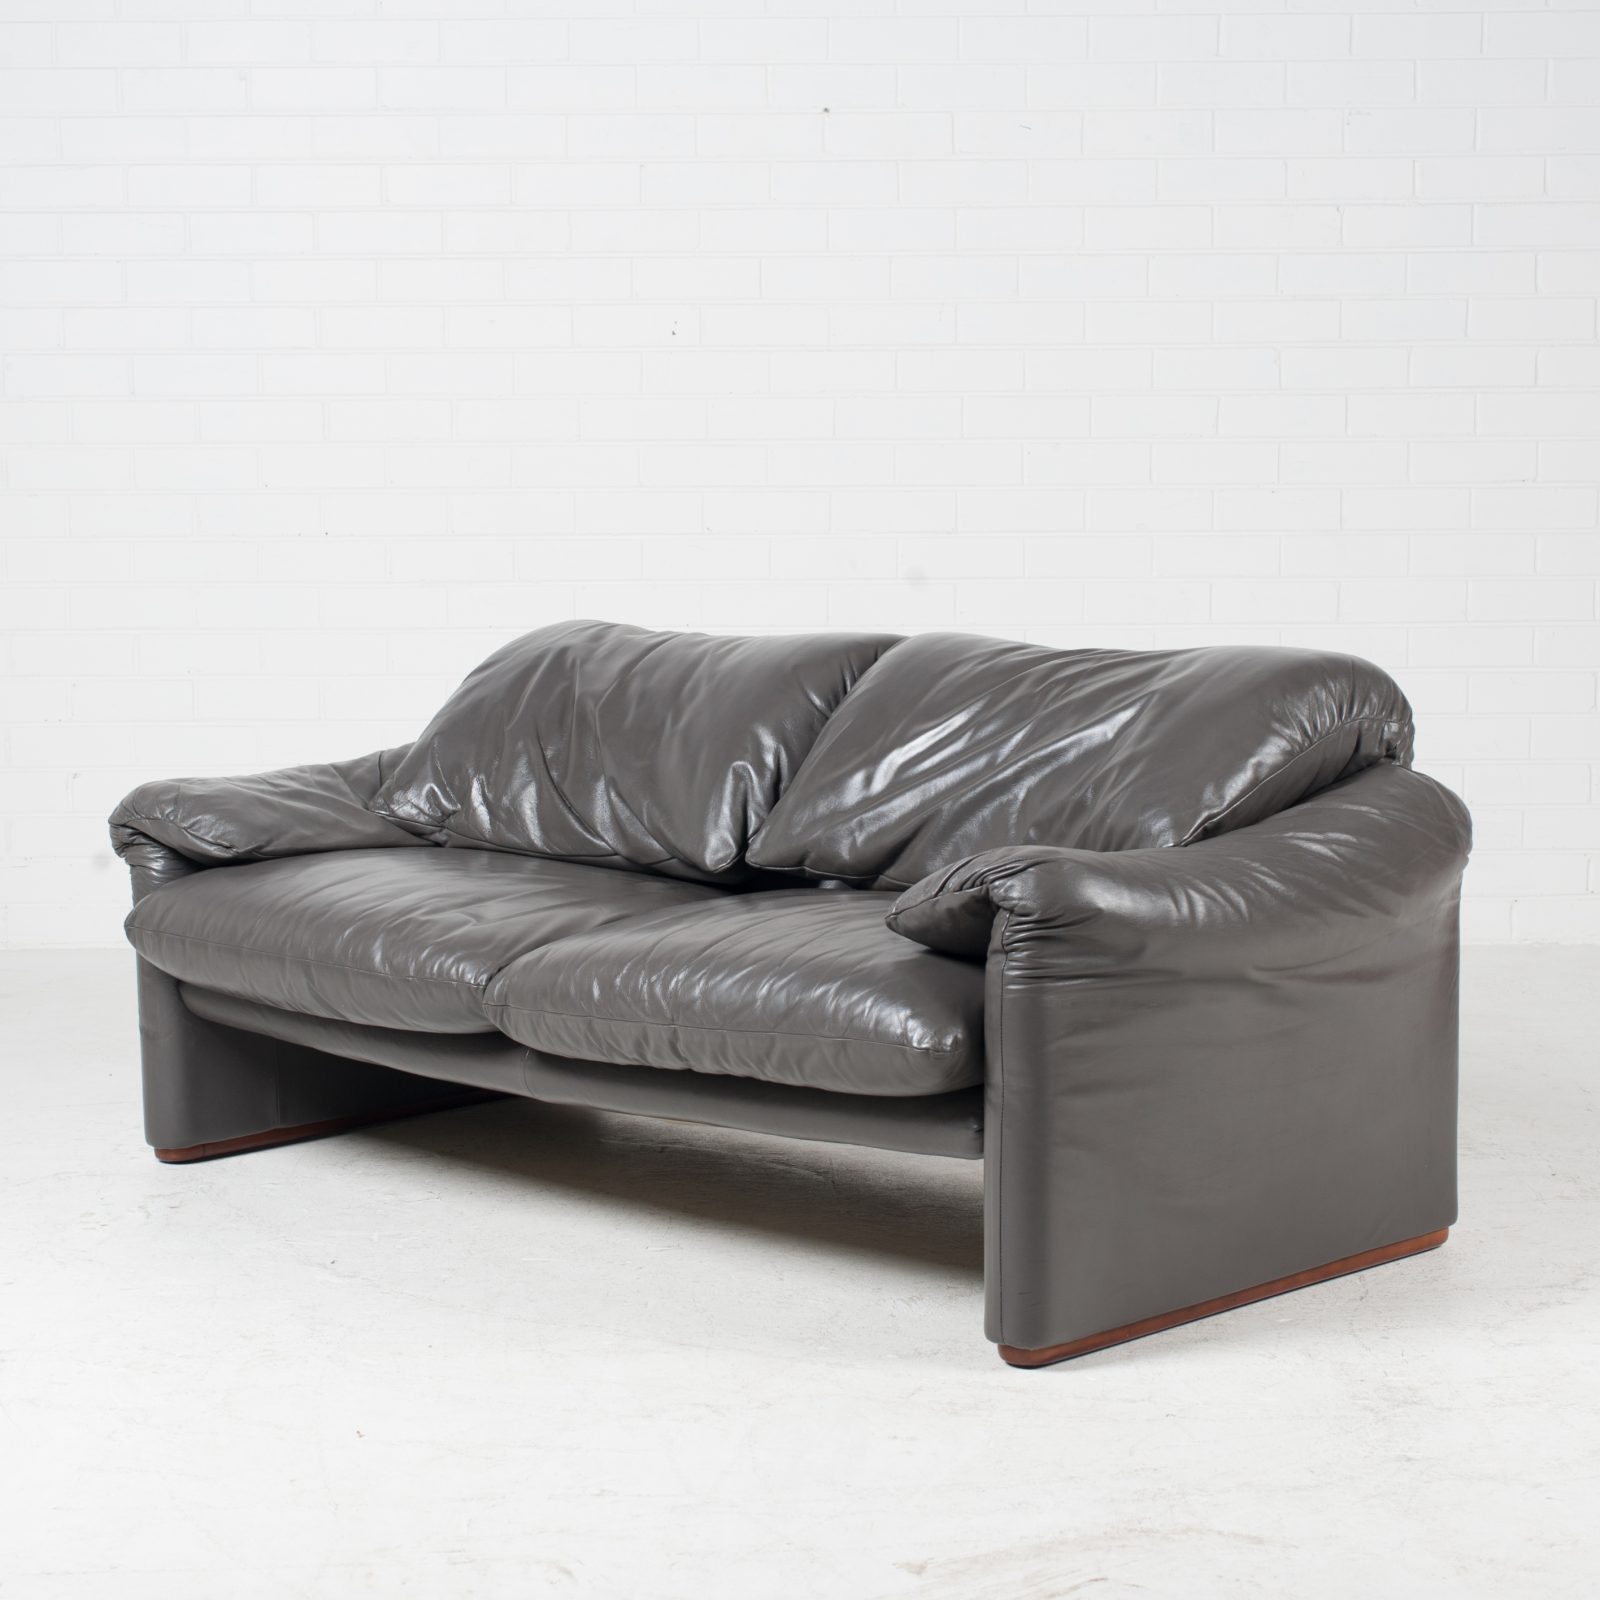 Maralunga 3 Seat Sofa By Vico Magistretti For Cassina In Grey Leather 1970s Italy 02 1600x1600 1.jpg